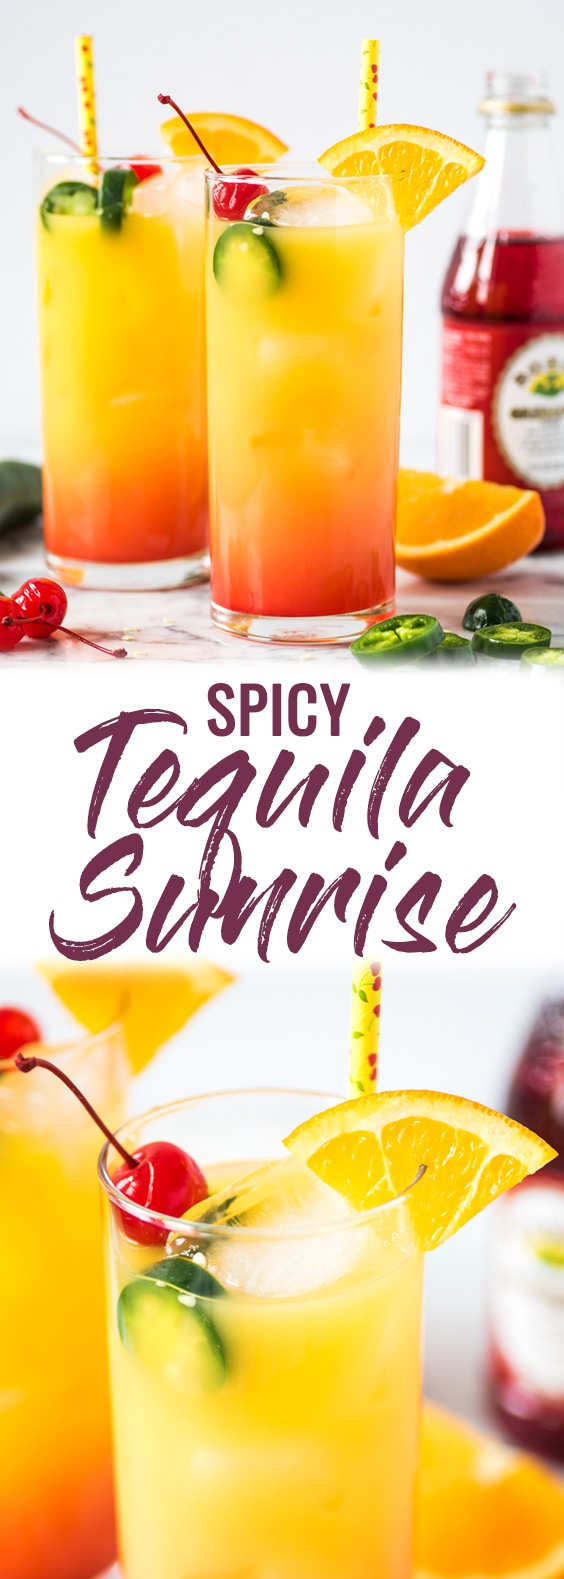 This Spicy Tequila Sunrise is made with orange juice, tequila, jalapeños and grenadine. It's the perfect cocktail for brunch or any celebration! #tequila #cocktail #brunch